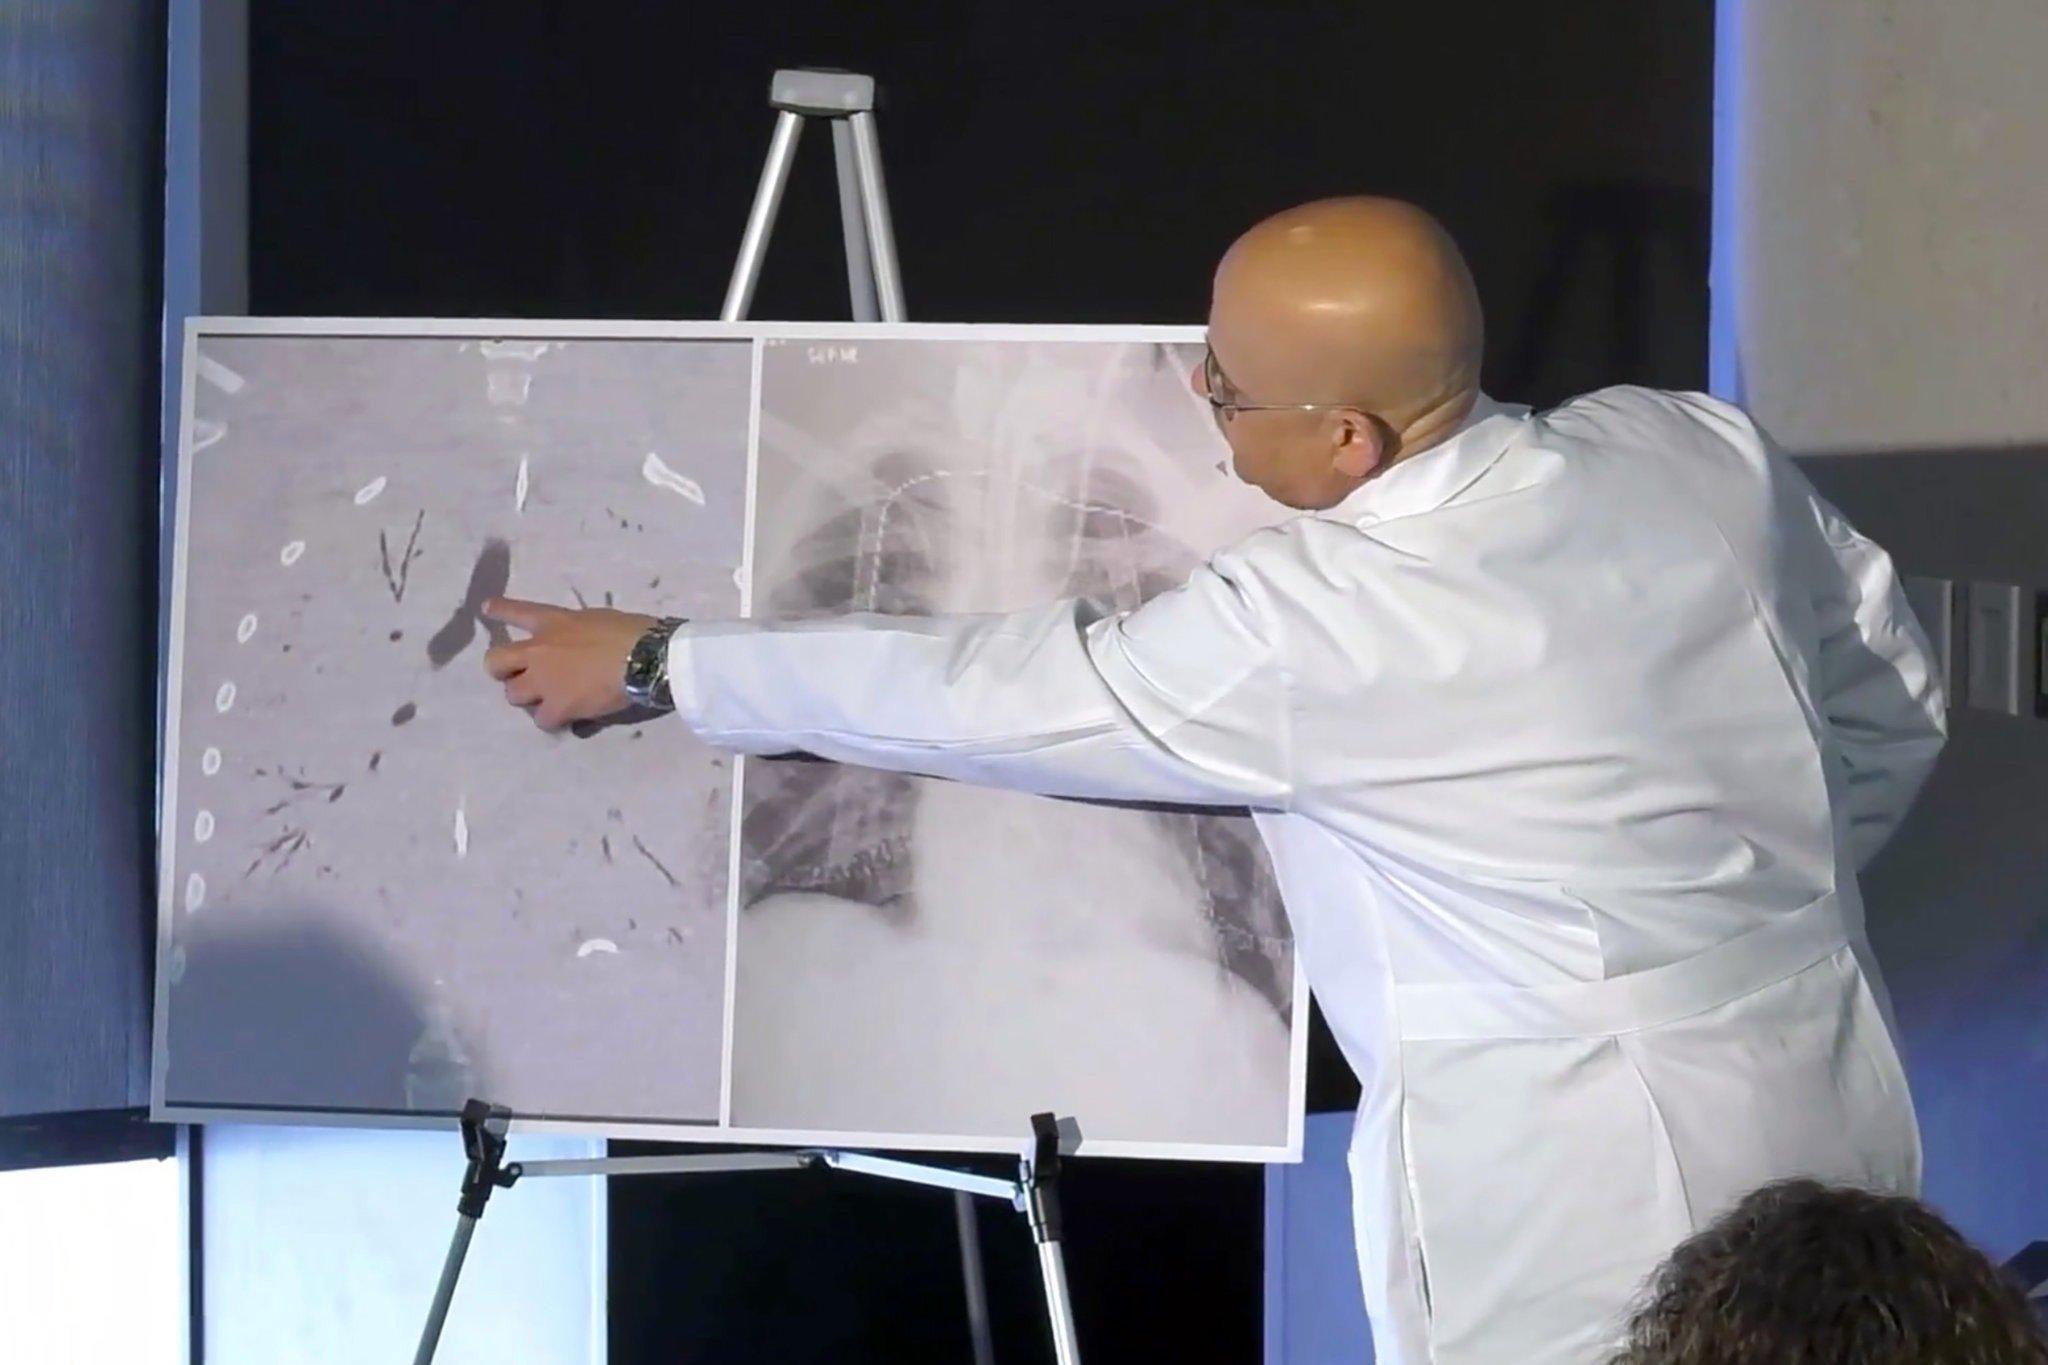 Dr Hassan Nemeh, Surgical Director of Thoracic Organ Transplant, shows areas of the patient's lungs